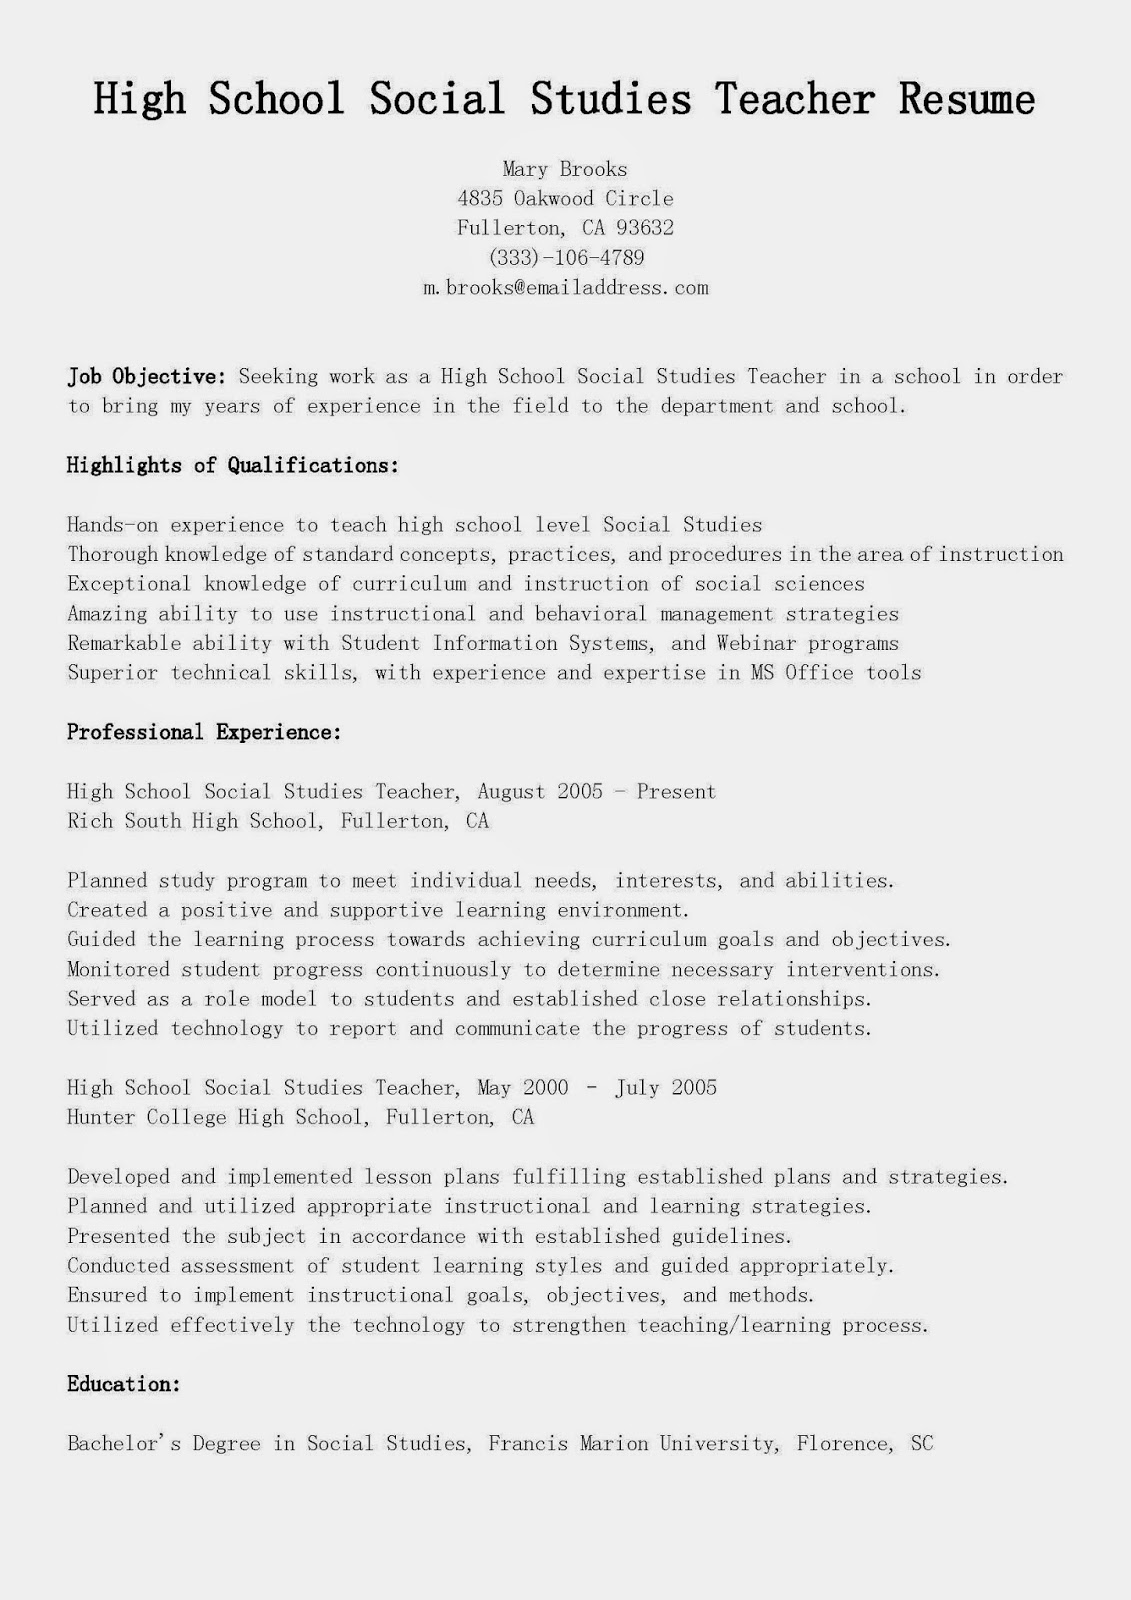 Exceptional This FREE Sample High School Social Studies Teacher Resume Will Help You  Crea. To Social Studies Teacher Resume